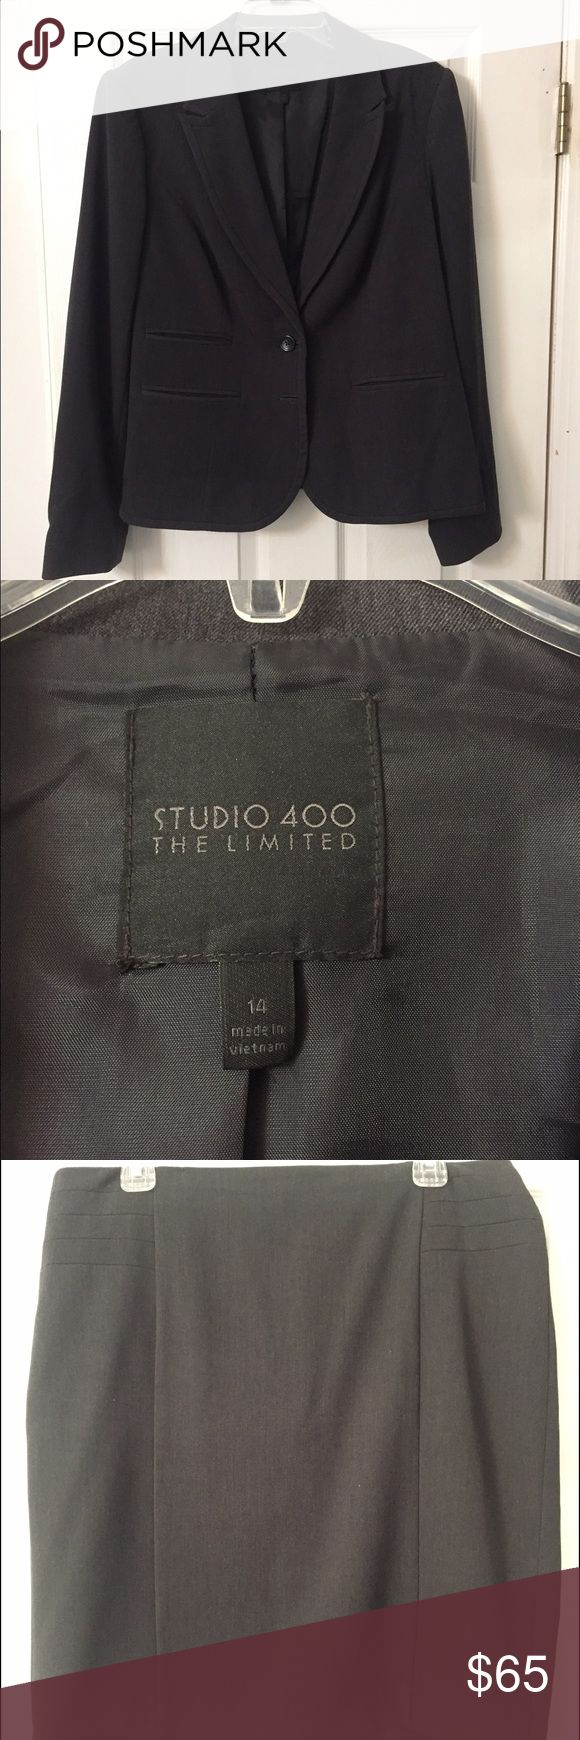 The Limited Studio 400 Charcoal 3 piece suit For sale is a size 14 suit from the limited. Only worn a couple of times. Selling the jacket (Size 14) the pencil skirt (size 14) and a pair of boot cut pants (size 14L). All match, all bought together. Only worn for a couple of interviews. The Limited Other